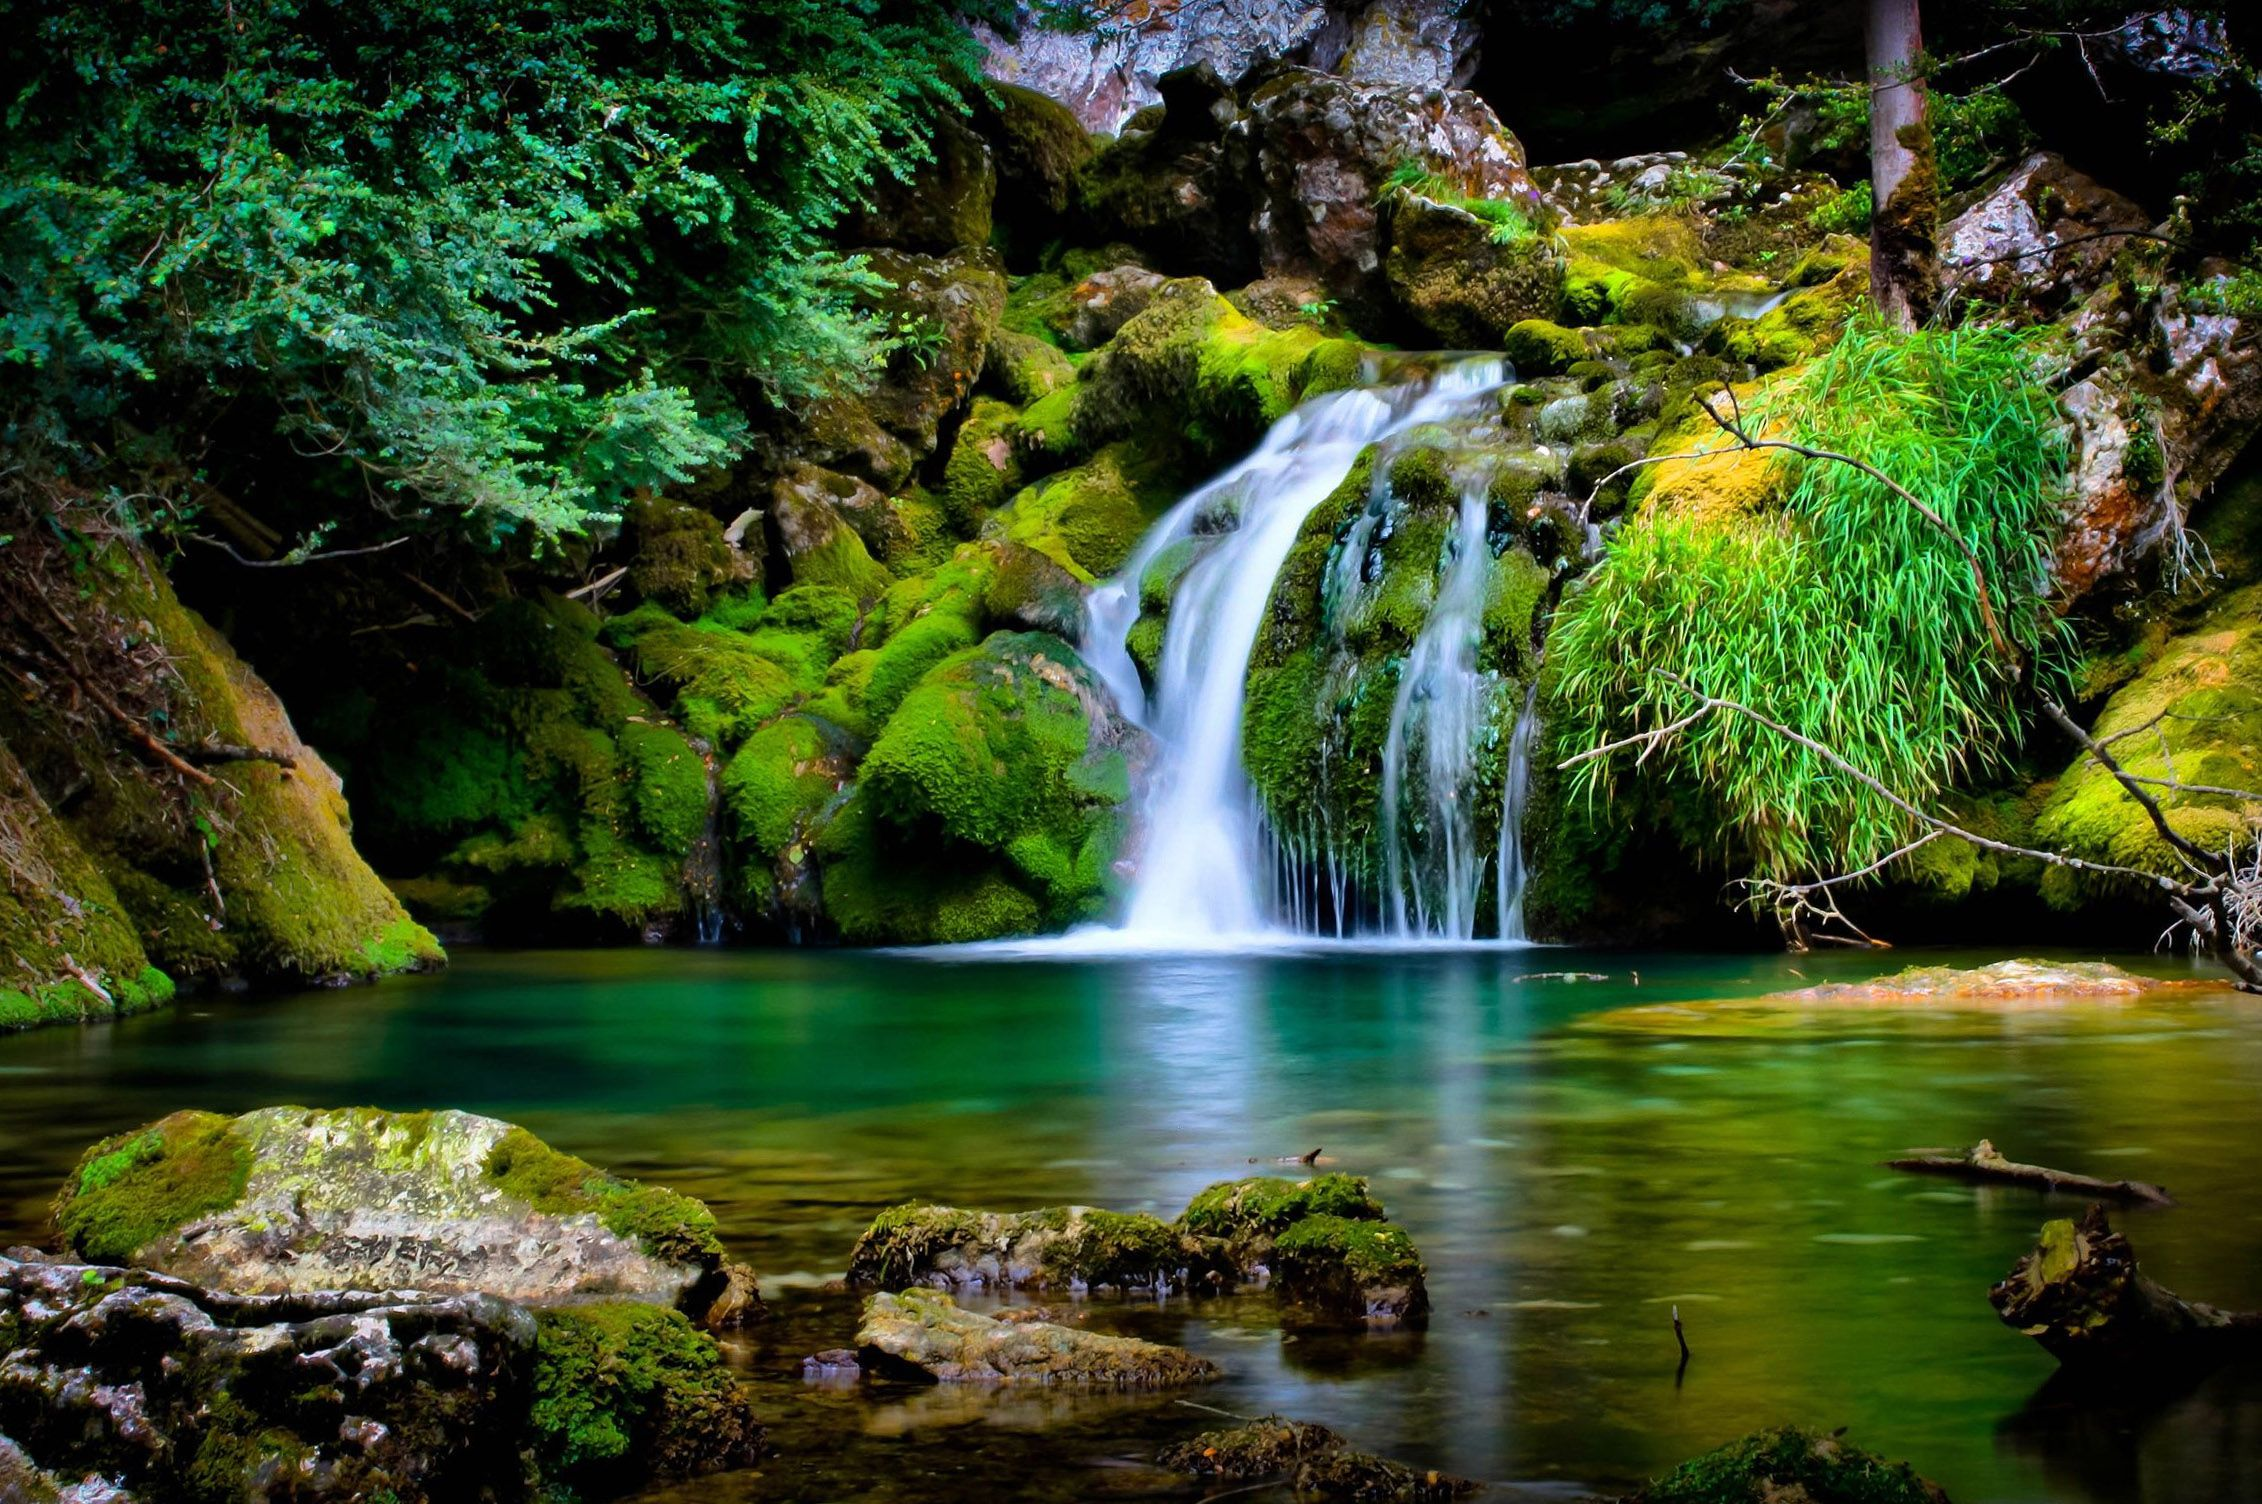 Wallpaper Widescreen High Resolution Nature Hd With Images Spring Wallpaper Waterfall Wallpaper Beautiful Nature Wallpaper